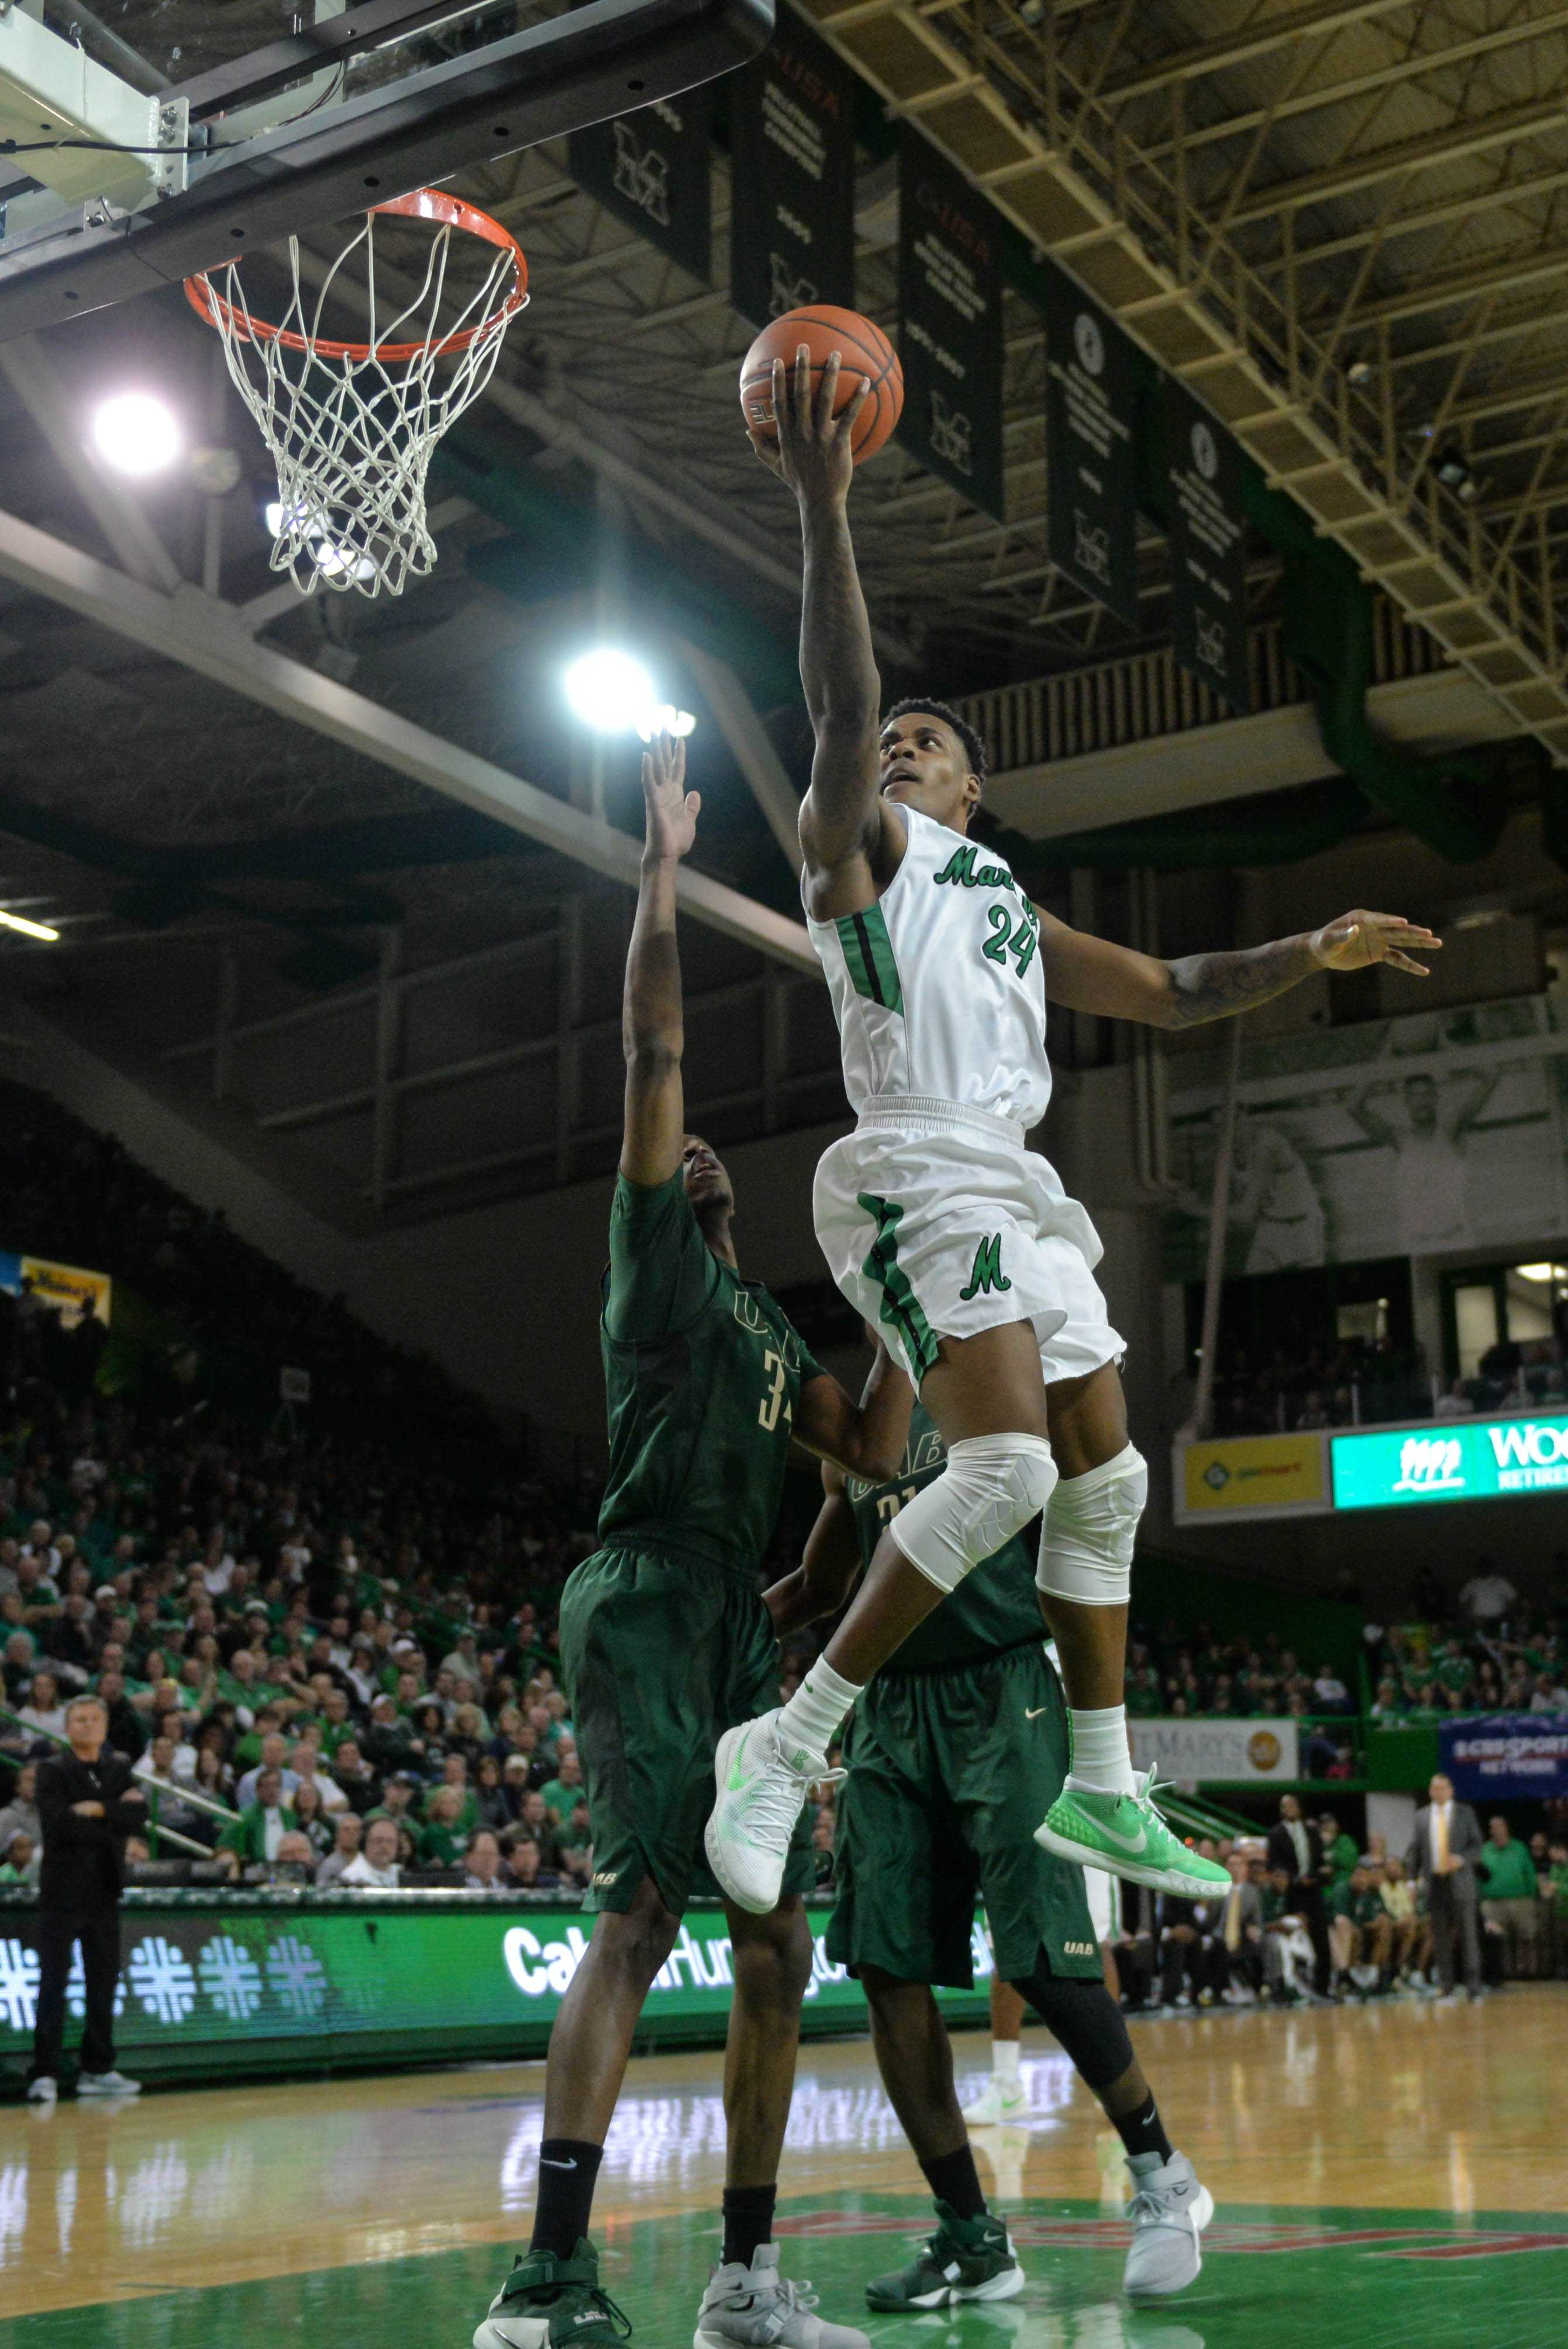 Marshall University senior forward James Kelly attacks the basket with two defenders on his heel Jan 30. against the University of Alabama at Birmingham at the Cam Henderson Center.